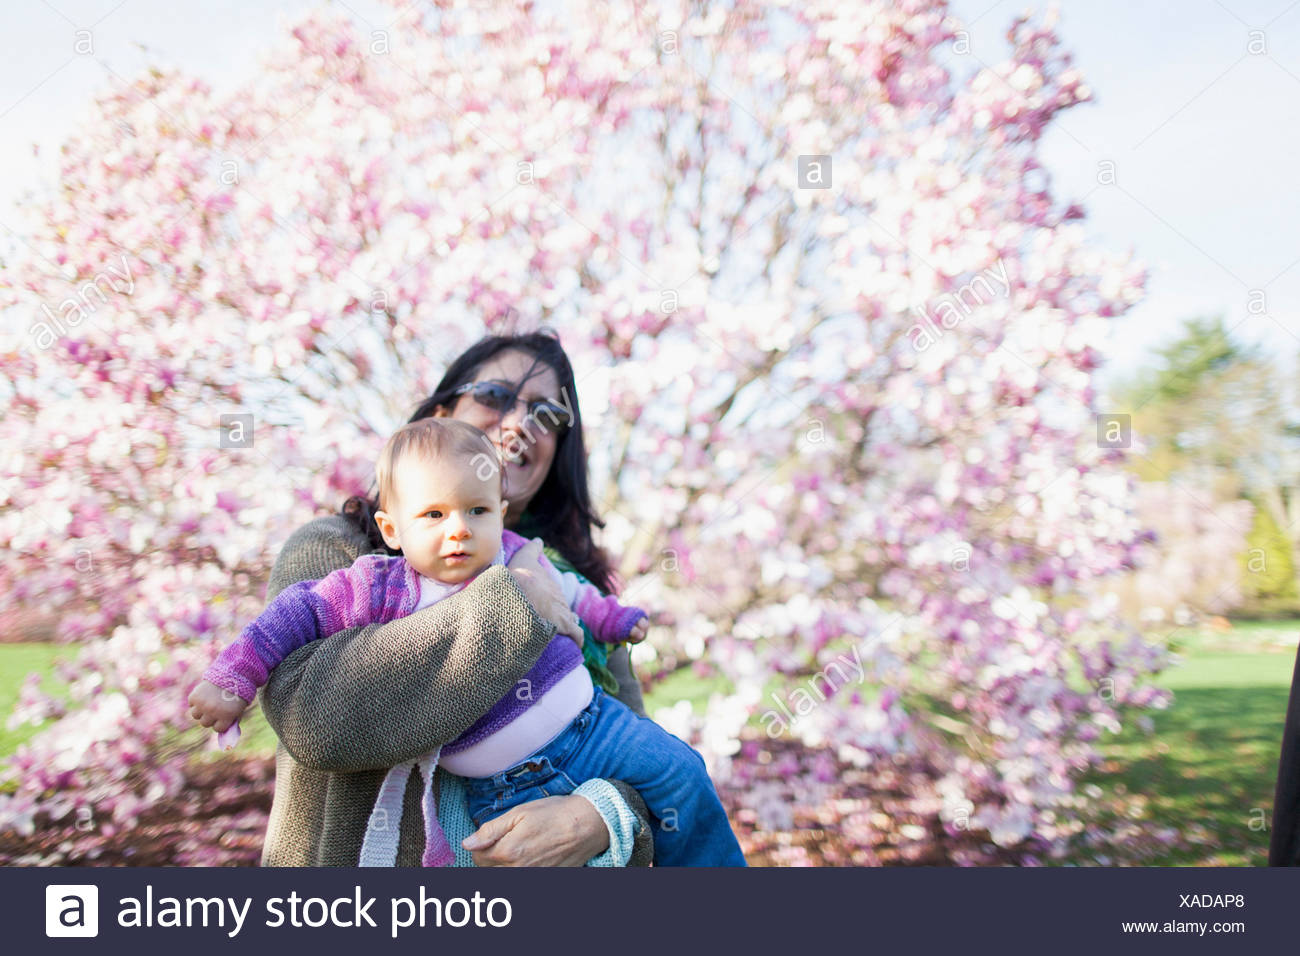 Grandmother and grandchild in garden - Stock Image